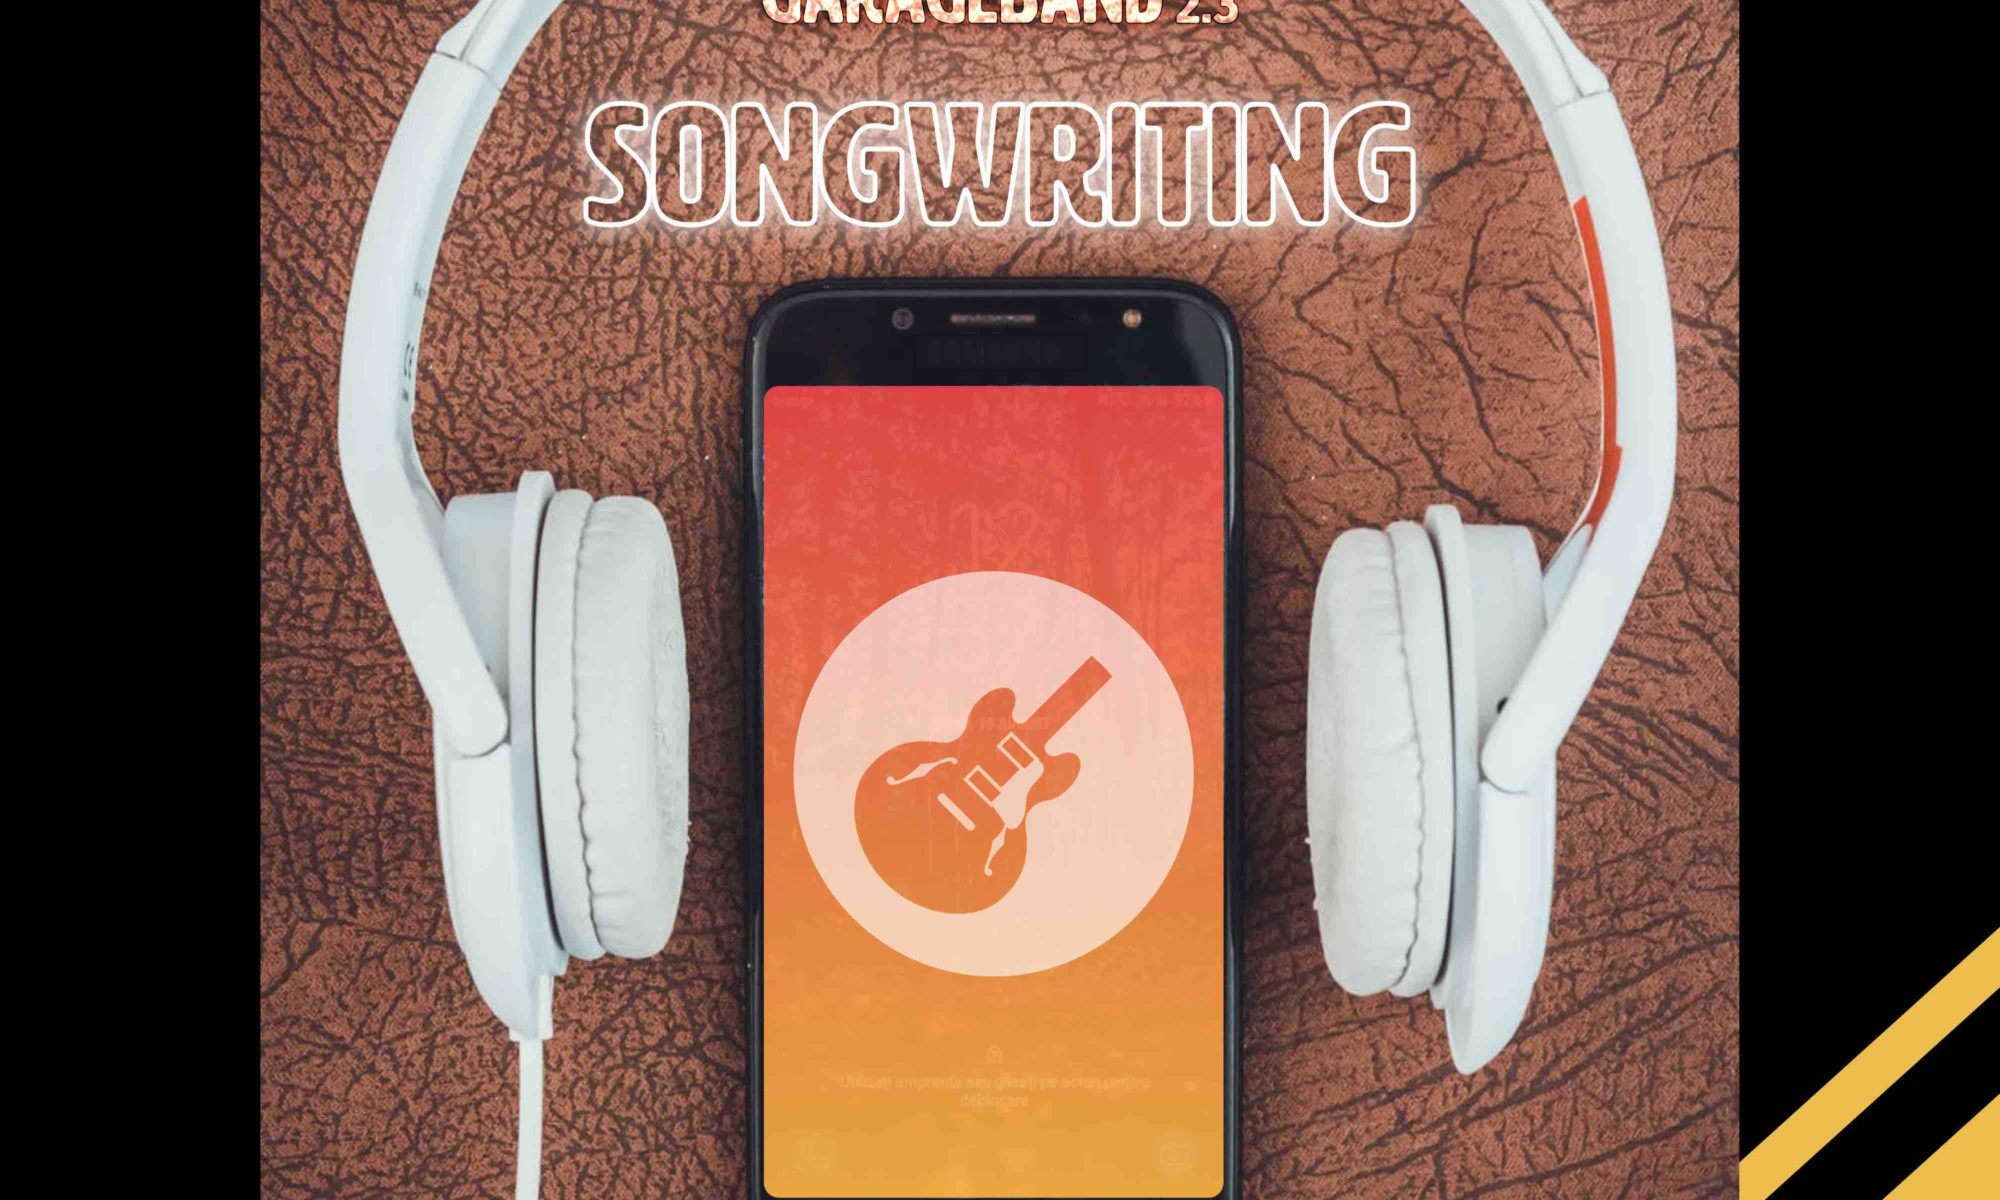 iPad muisc - songwriting